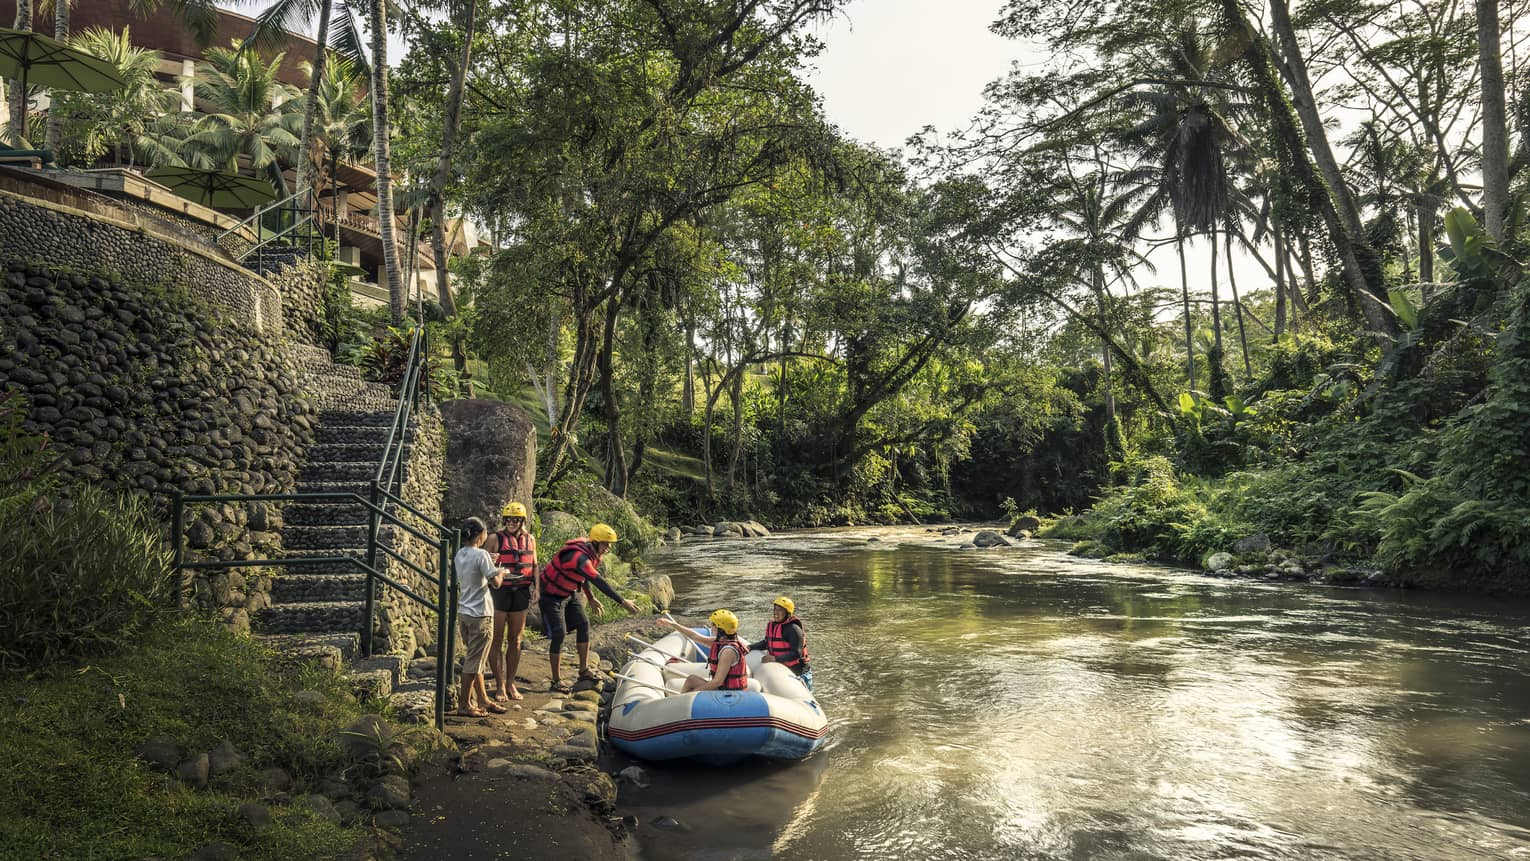 Guests disembarking from a raft after a river adventure in Bali